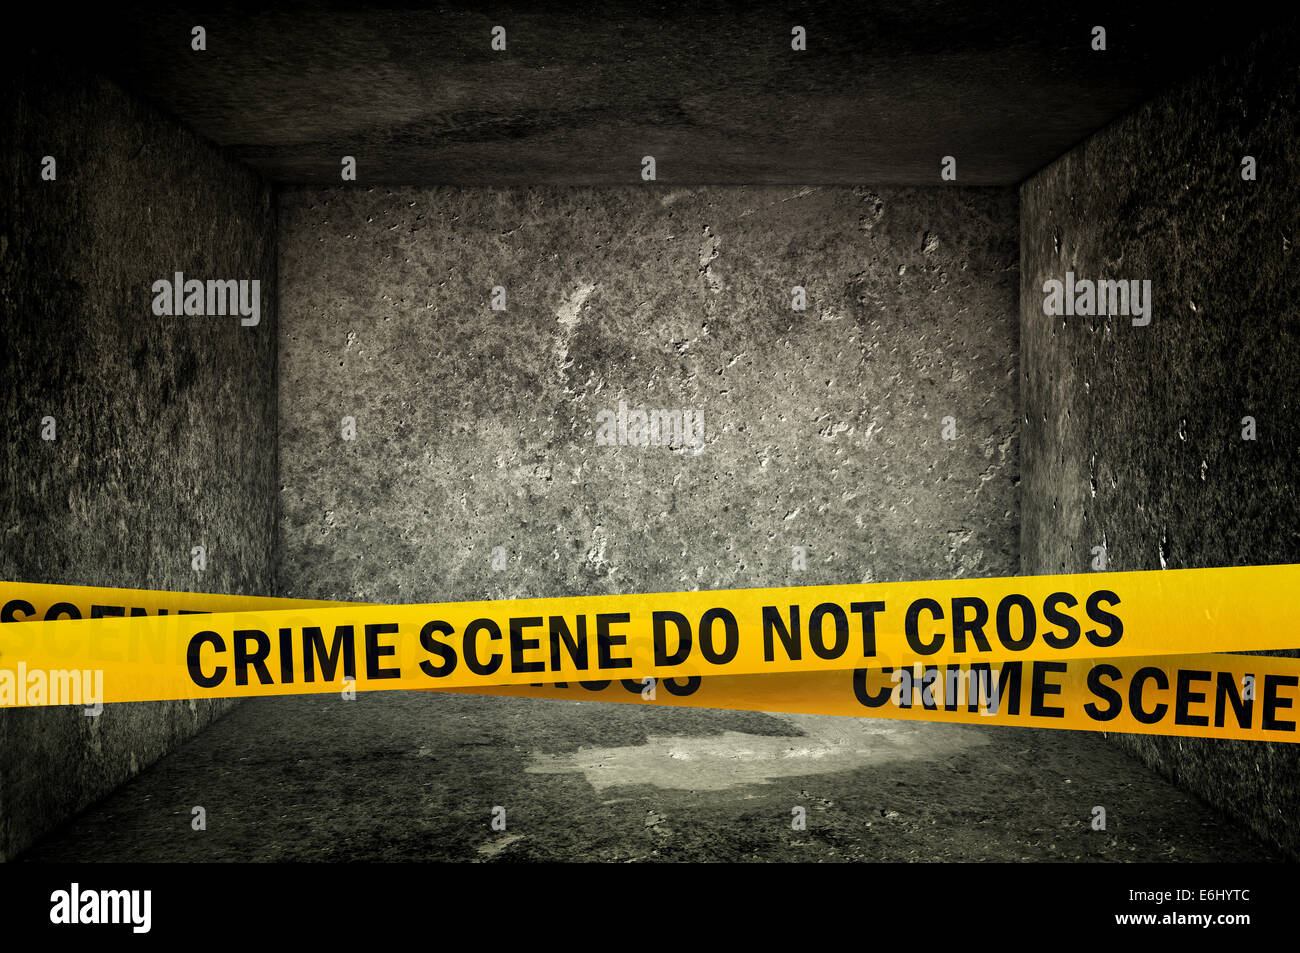 Crime Scene Do Not Cross Yellow Headband Tape in dark concrete interior. Crime Scene Police Ribbon. - Stock Image